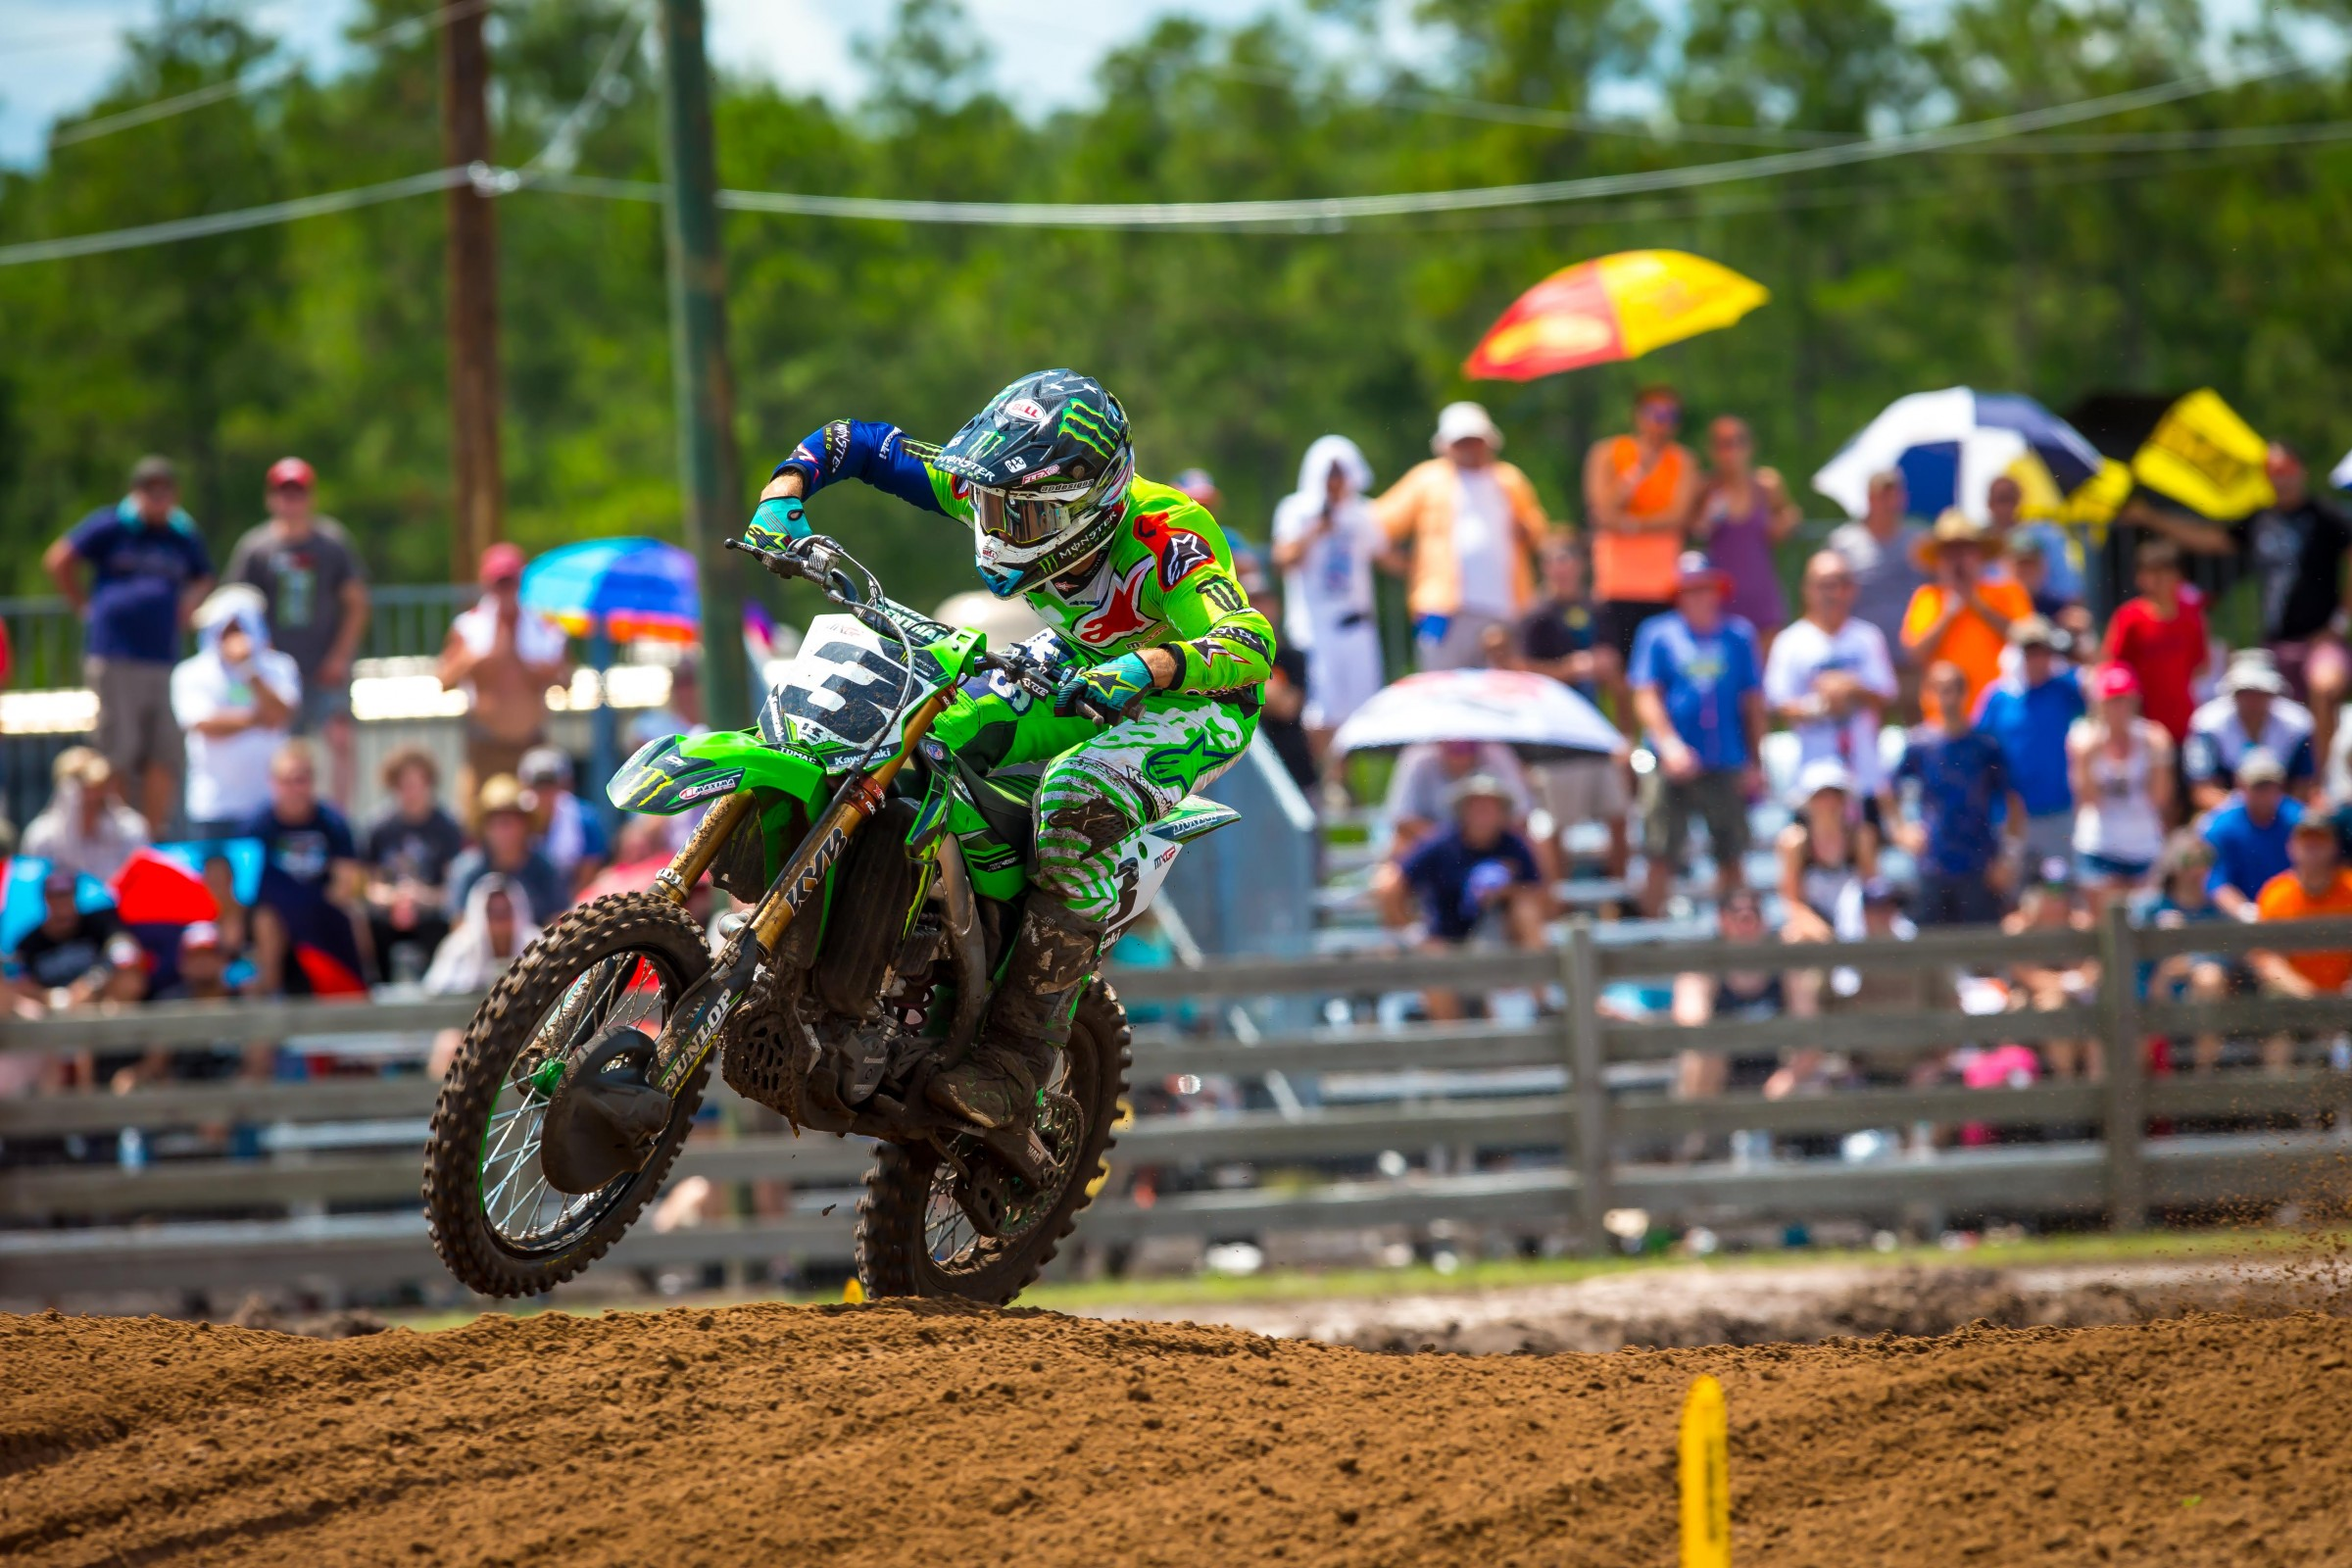 Tomac rebounded from a rough Saturday to win the first moto on Sunday at WW Motocross Park.